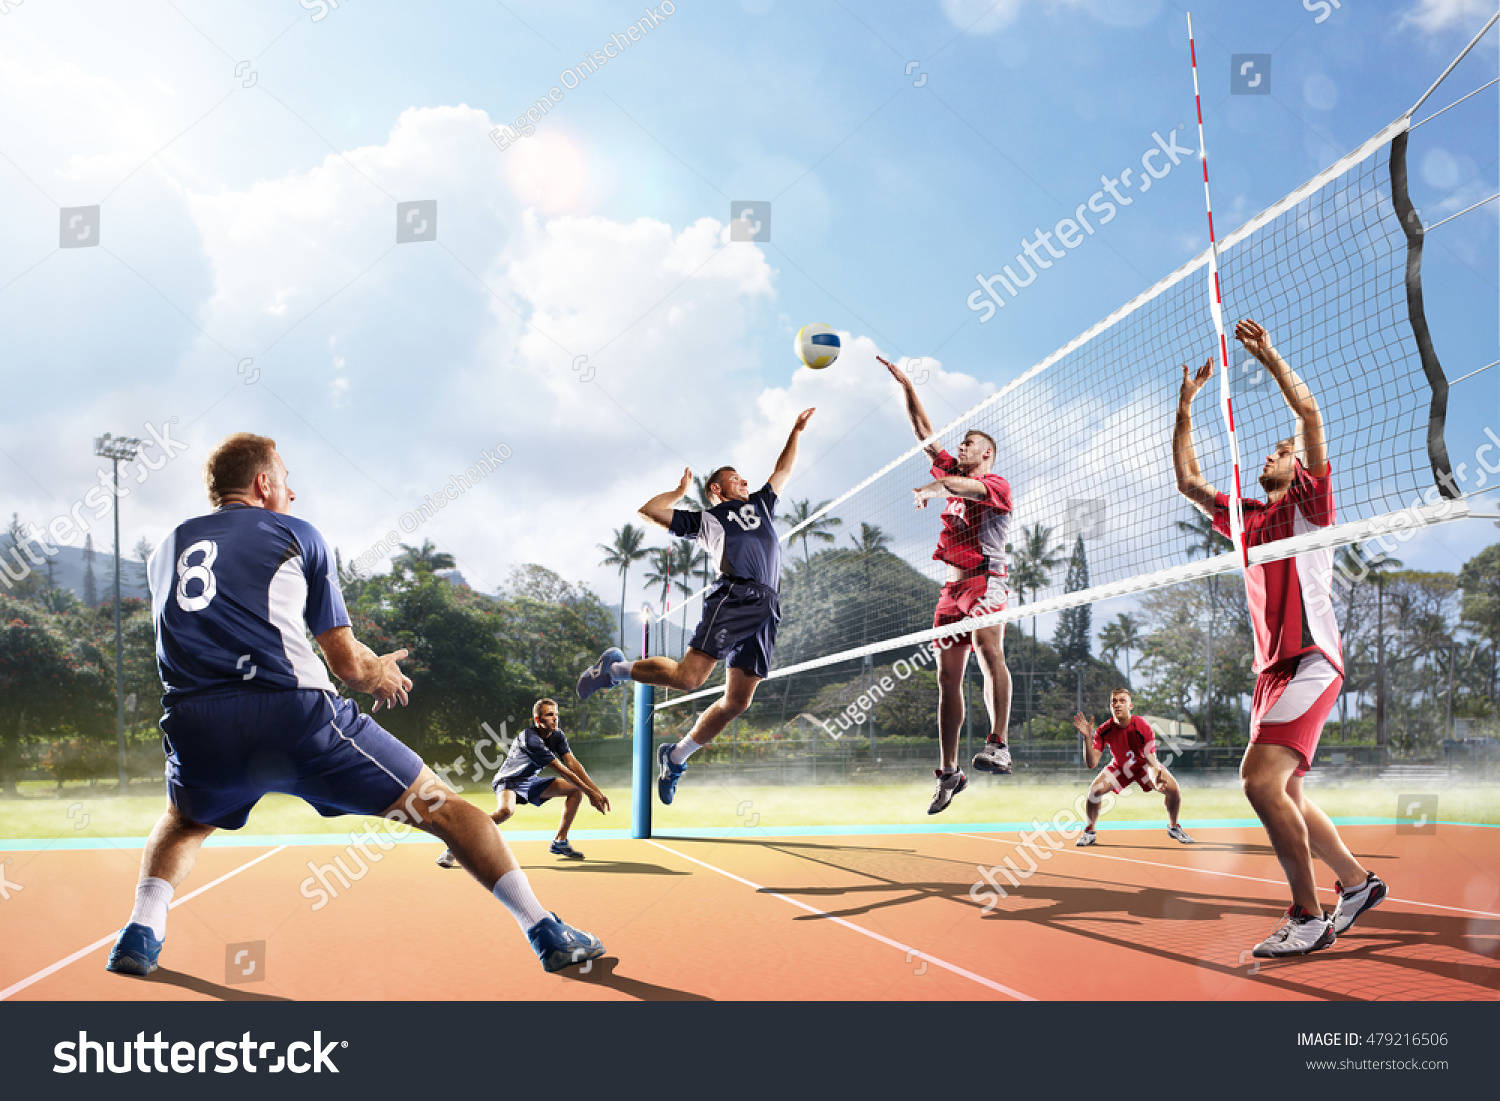 Active Young Women Volleyball Player Sport Stock Vector: Professional Volleyball Players Action On Court Stock